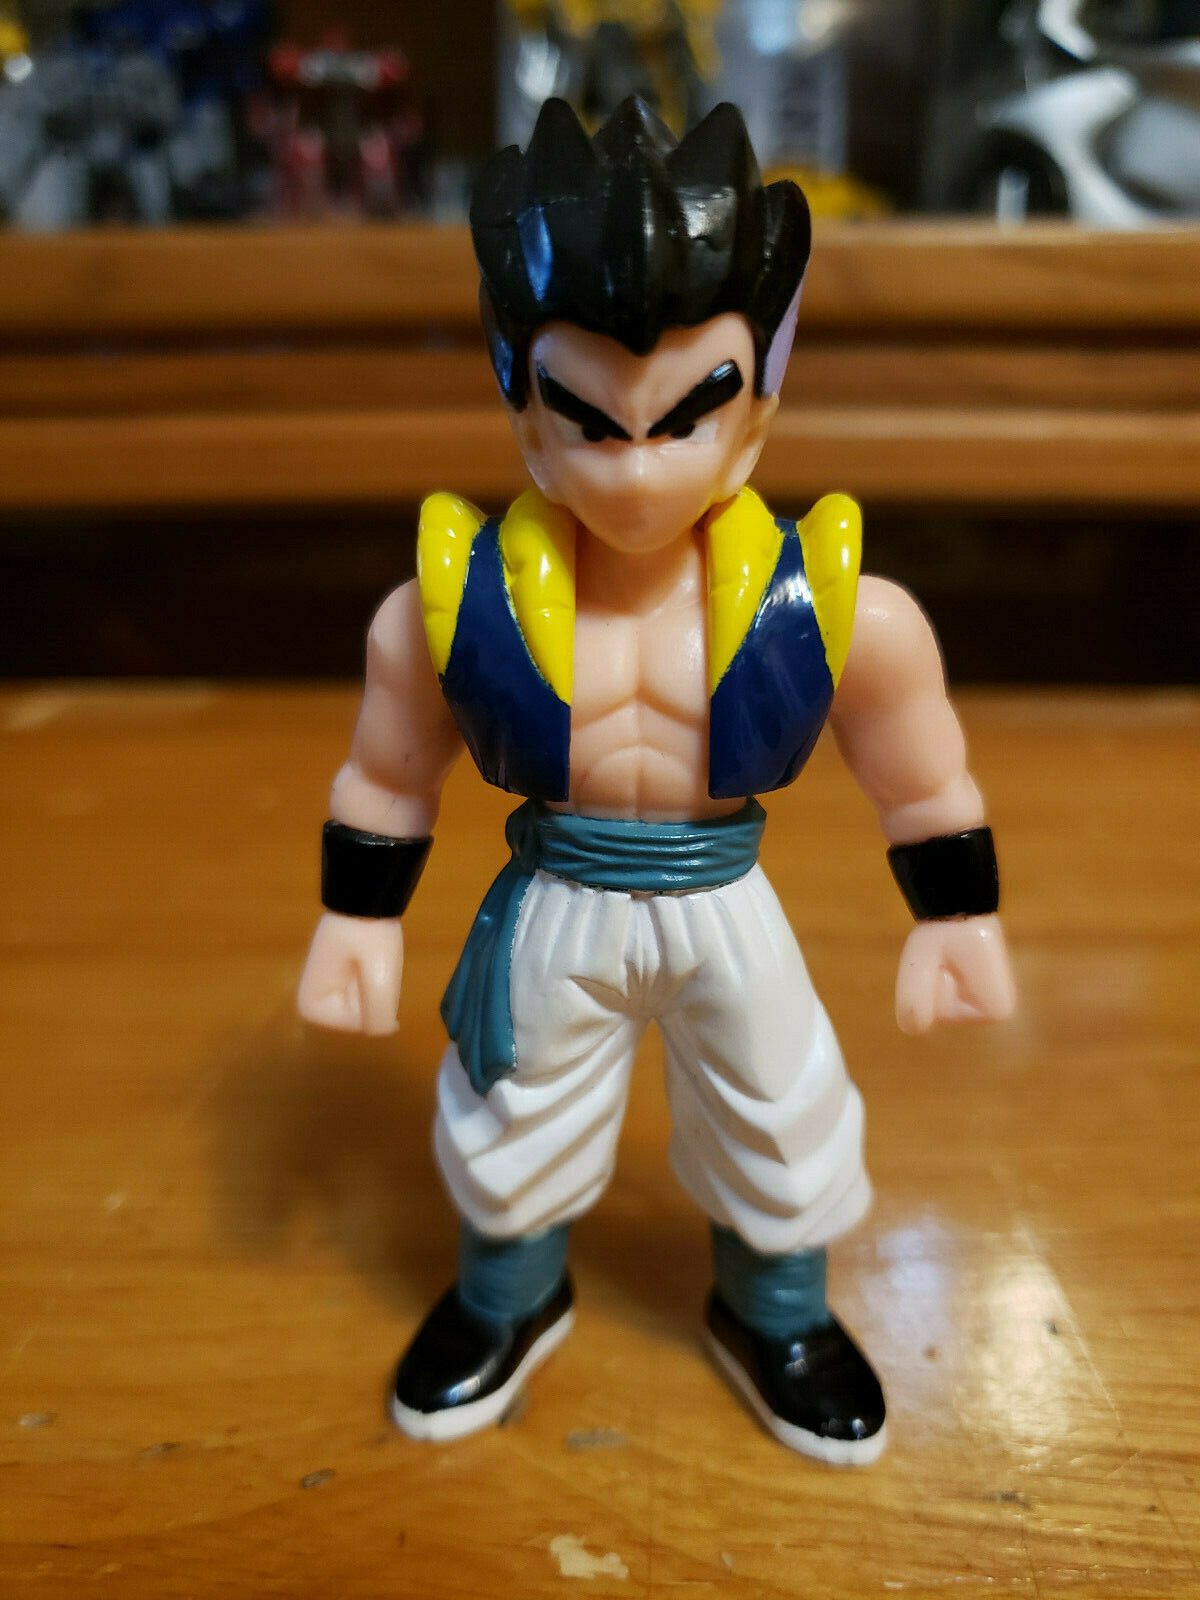 Character:Gotenks Vol 18:BANDAI Dragonball Z  and Dragon Ball GT super battle collection AB Toys & Irwin